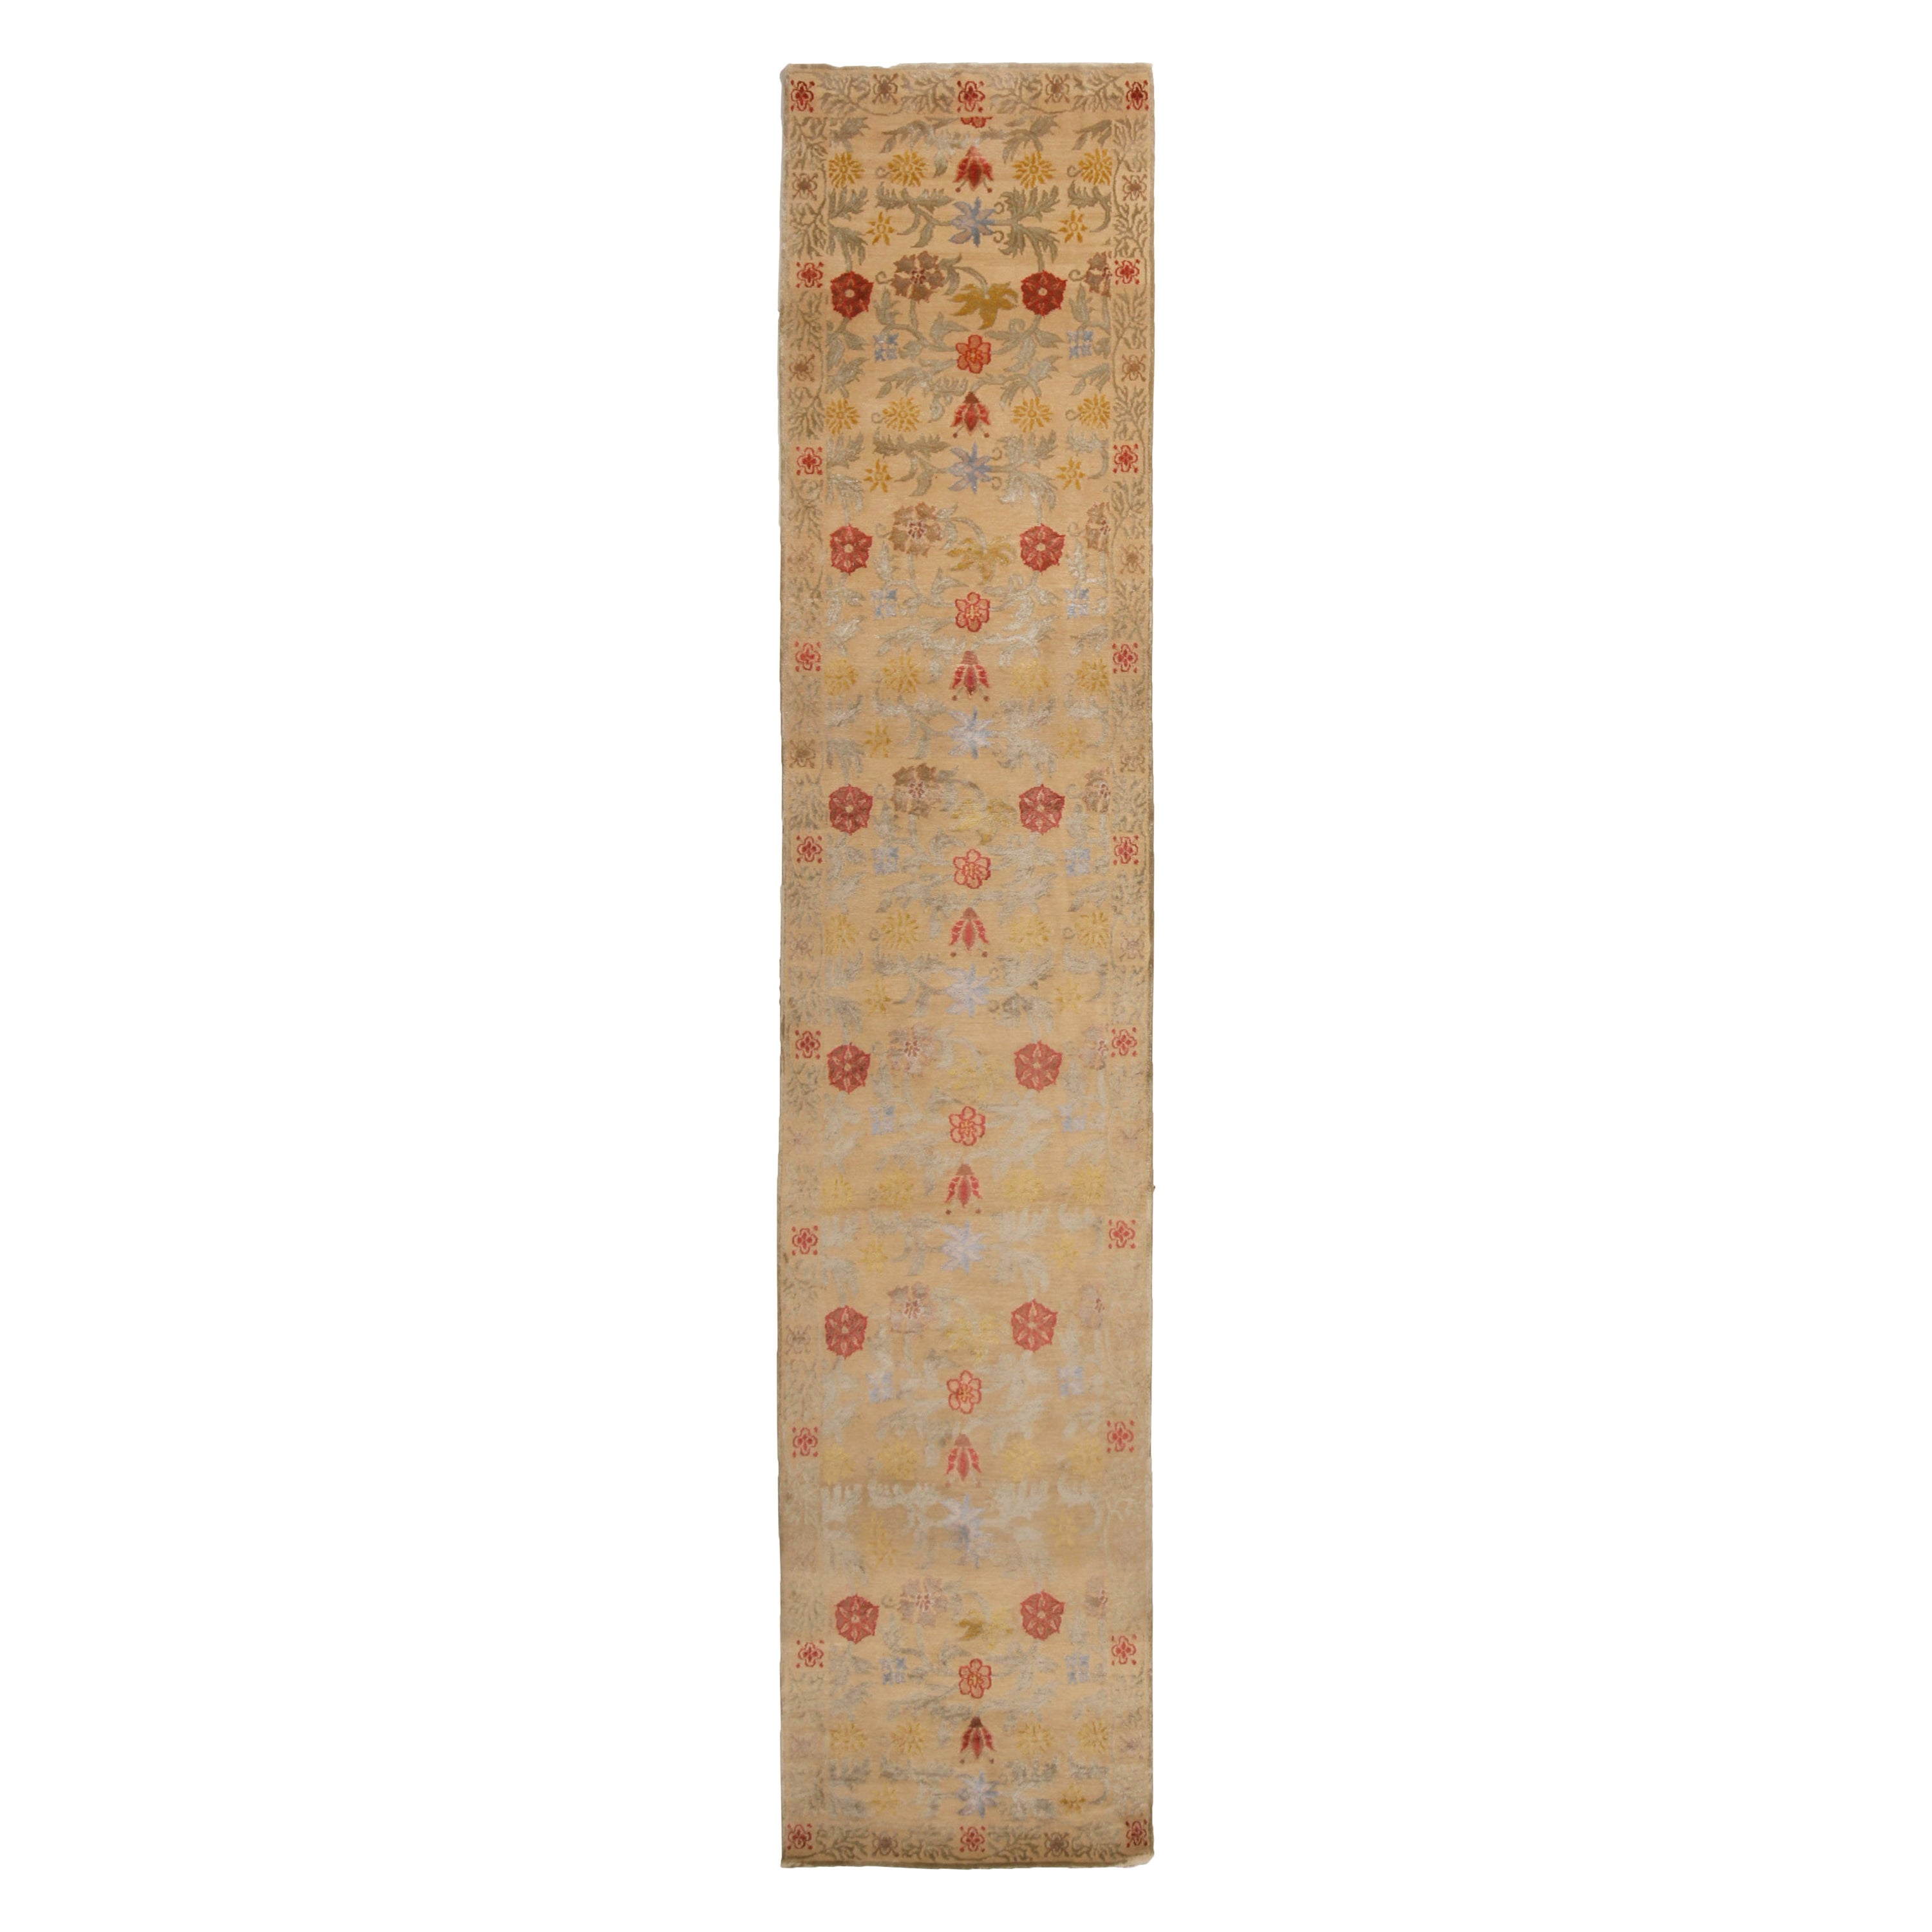 Rug and Kilim's Bilbao Spanish Design Beige Floral Wool-Silk Runner